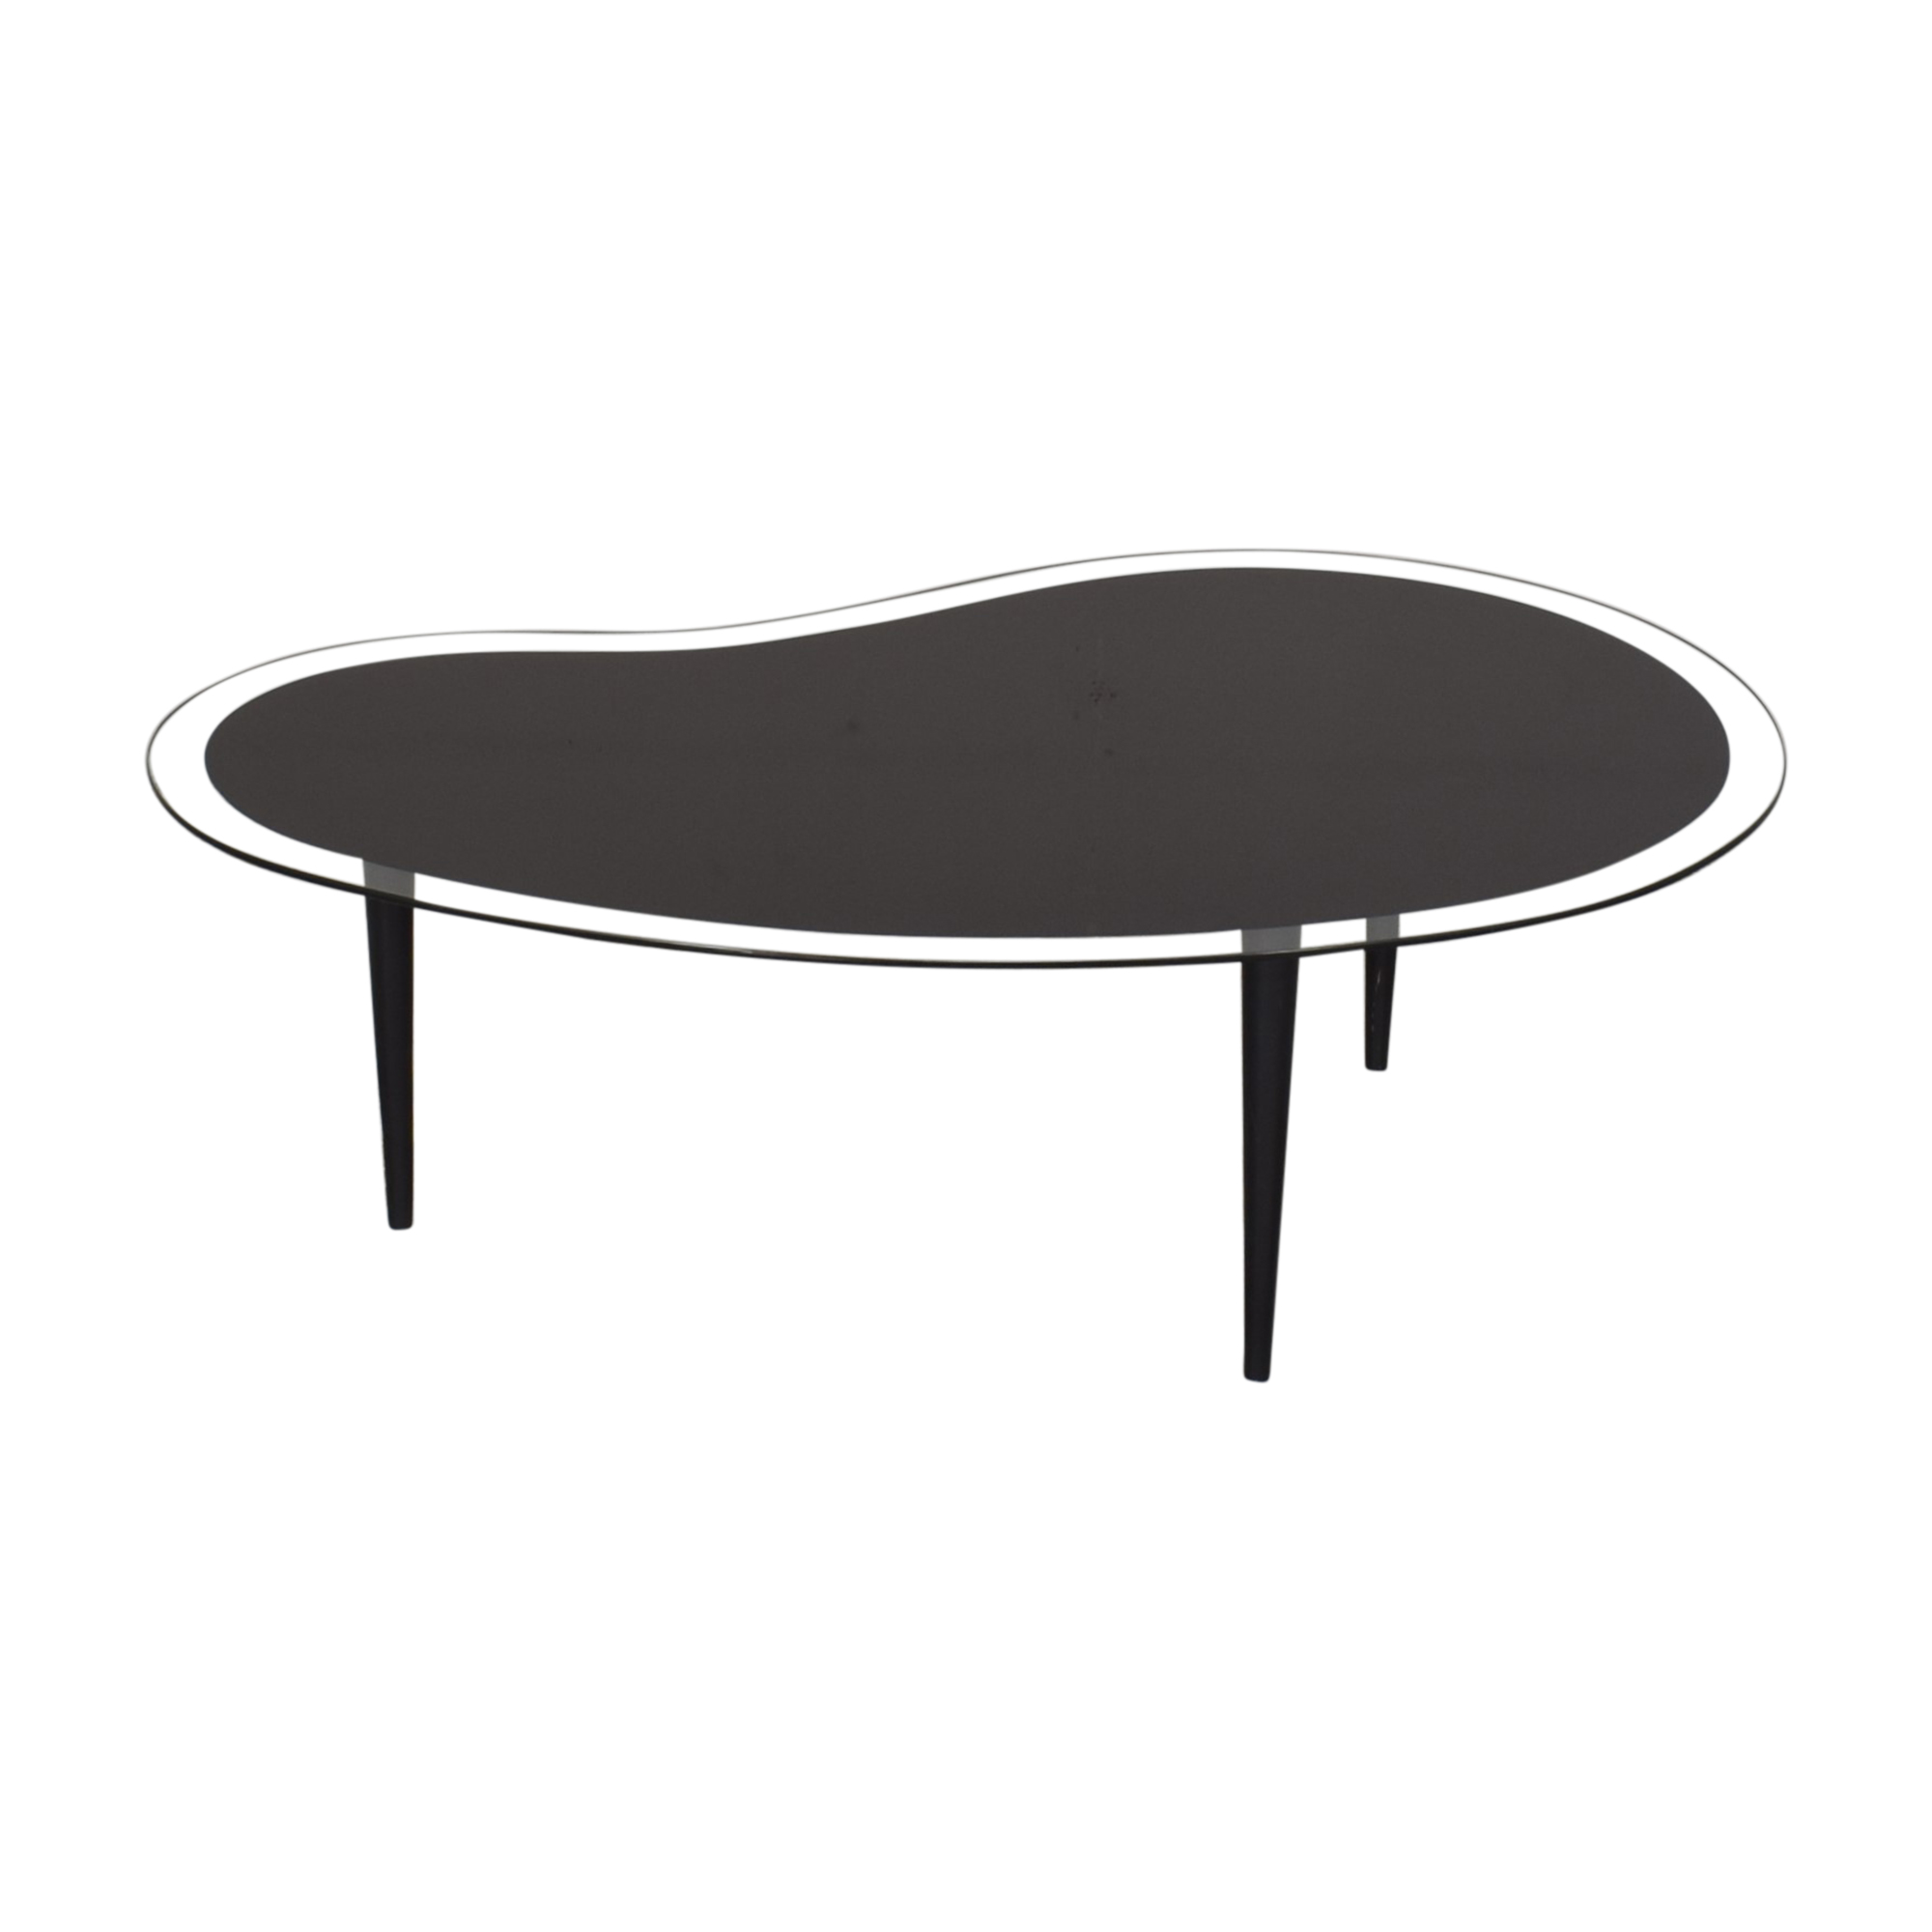 Vintage Kidney Shaped Coffee Table